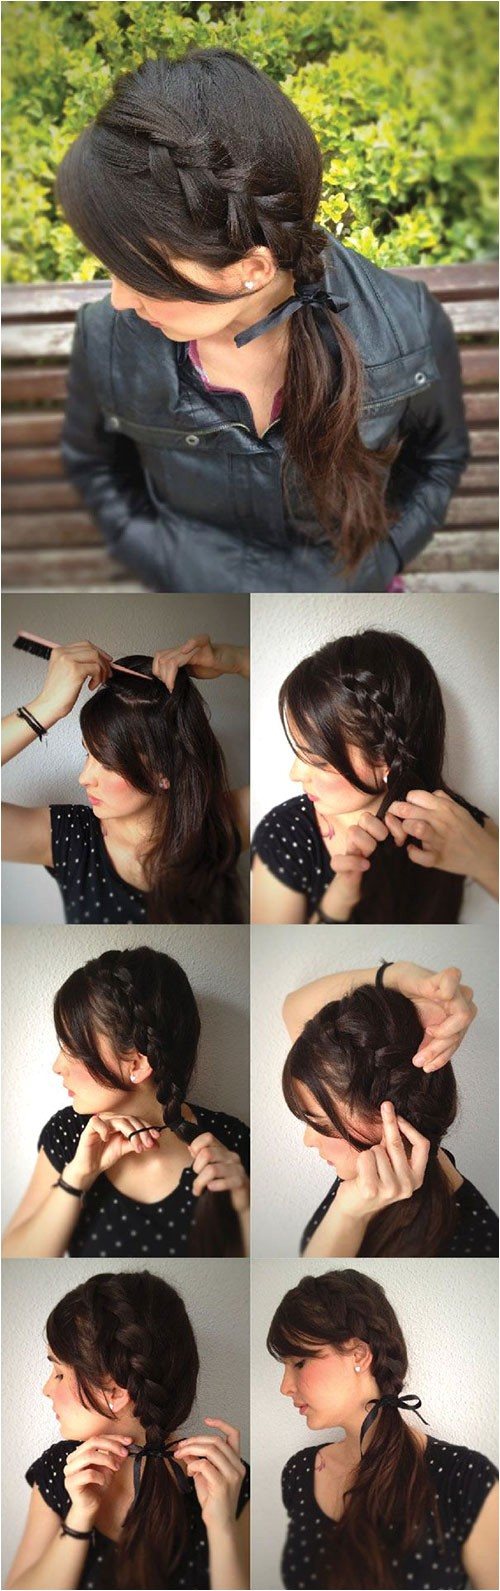 simple step by step winter hairstyle tutorials for beginners learners 2016